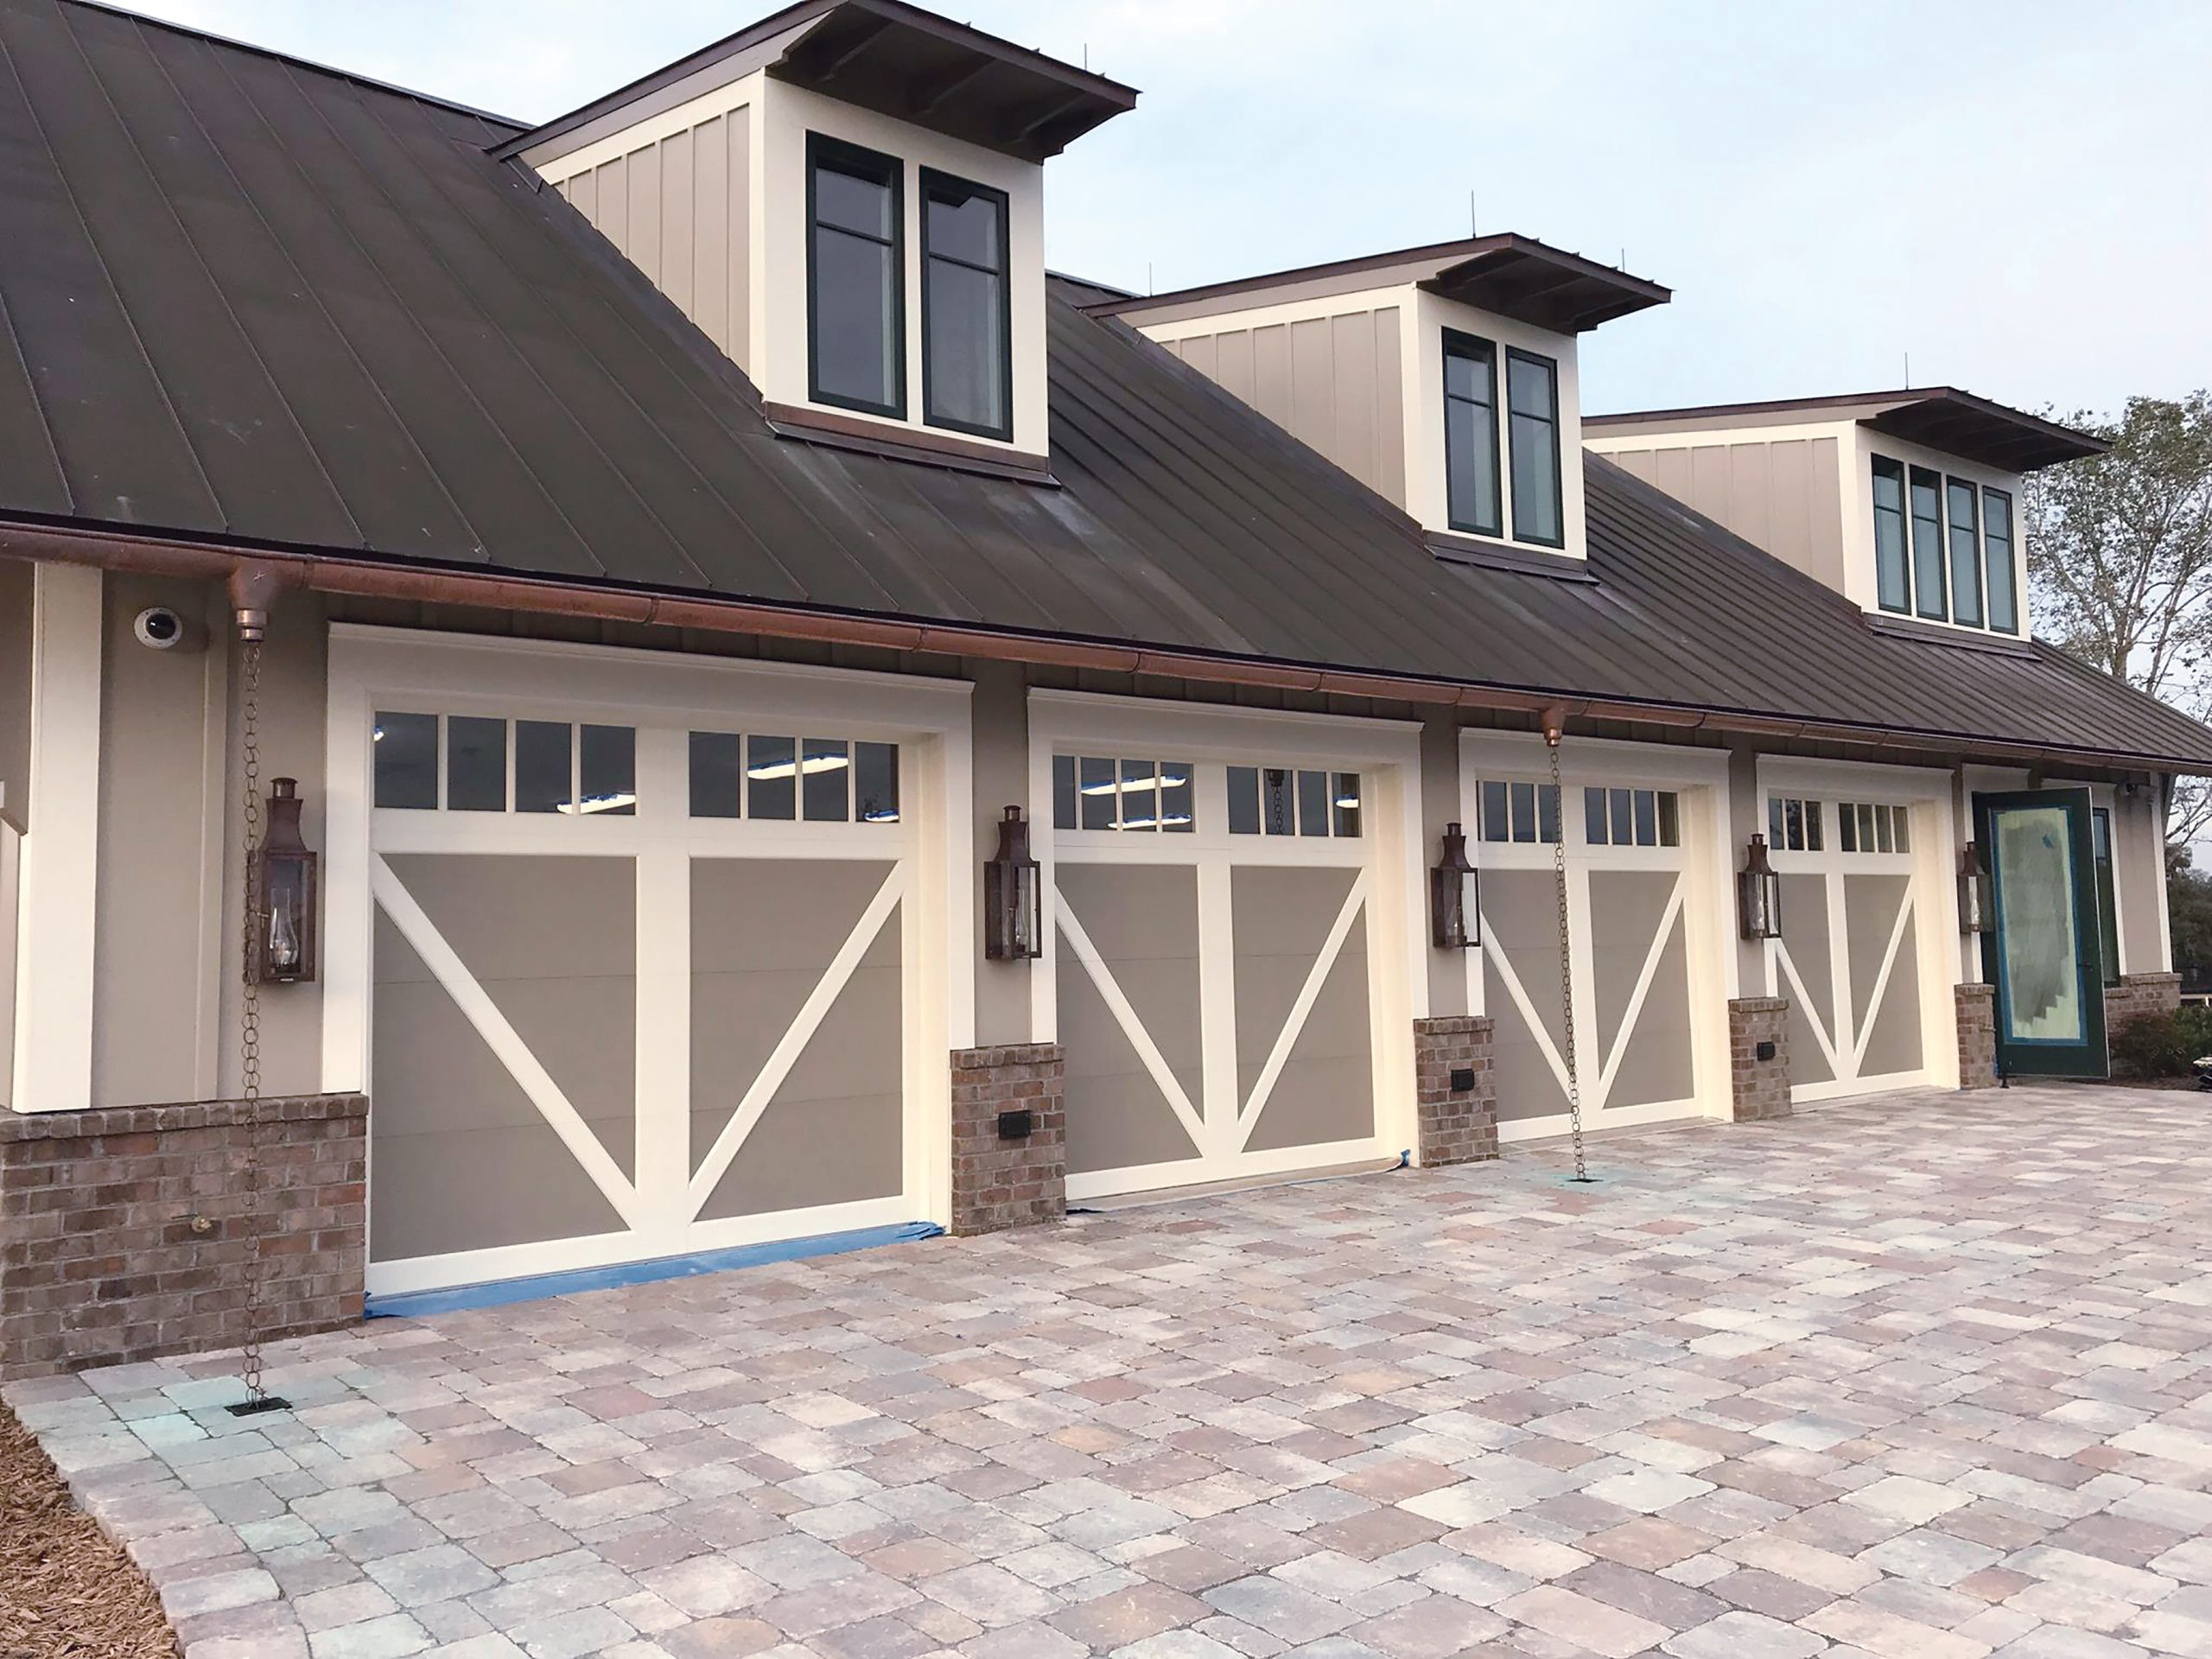 Carriage House with Overlay Panel